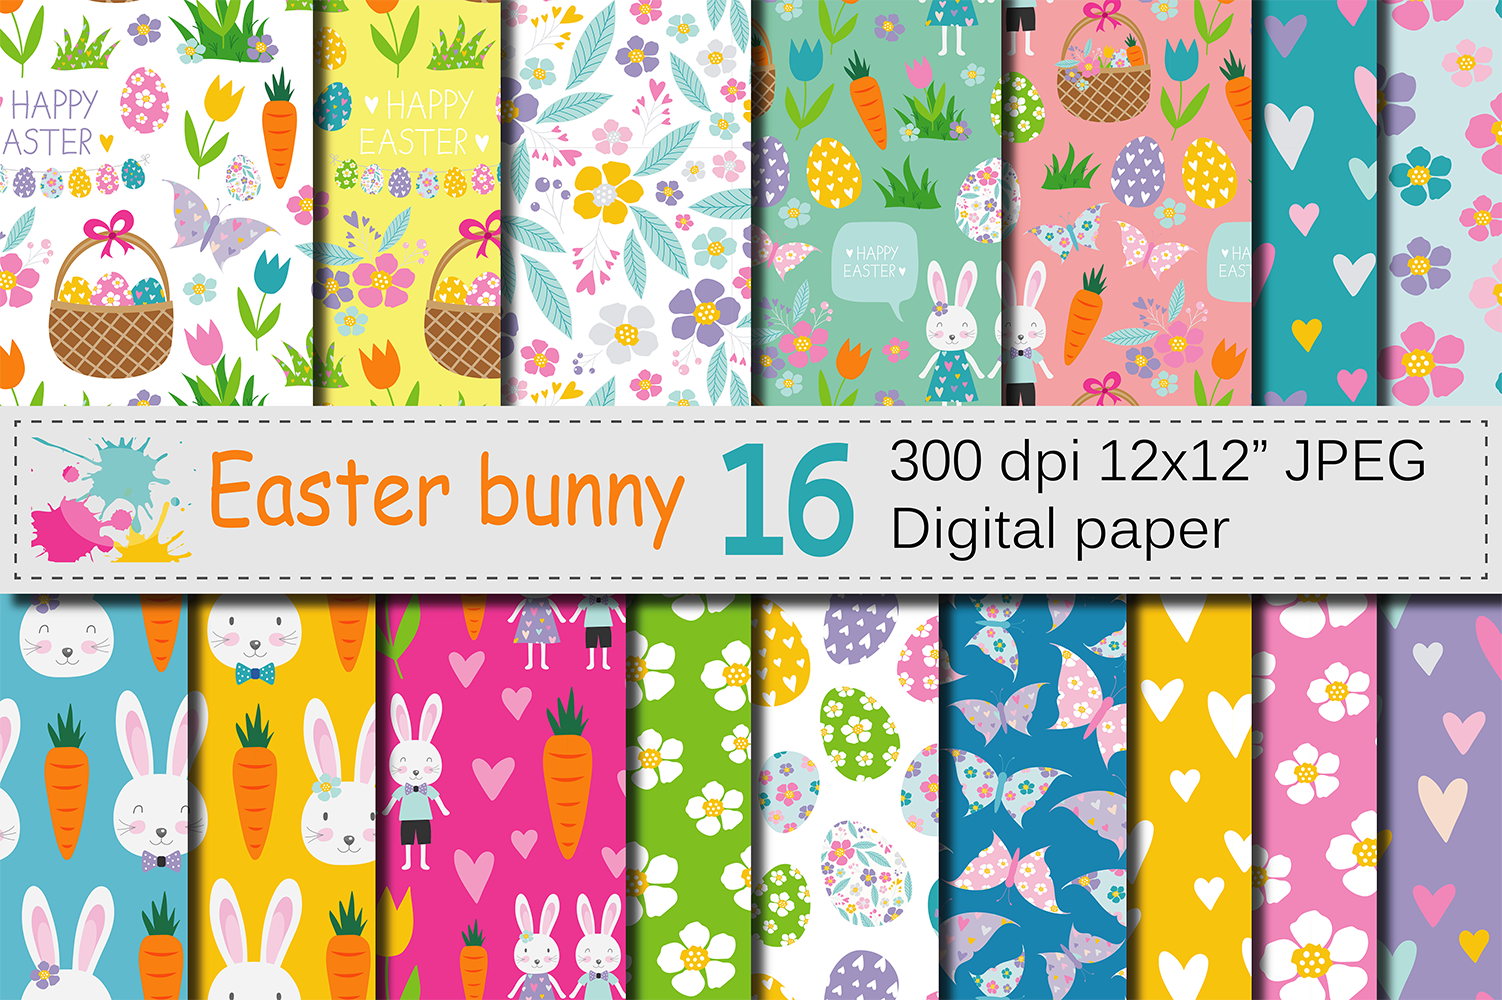 Easter Bunny Digital Paper / Bright Easter Seamless Patterns with bunnies, flowers and Easter eggs / Scrapbooking paper example image 1